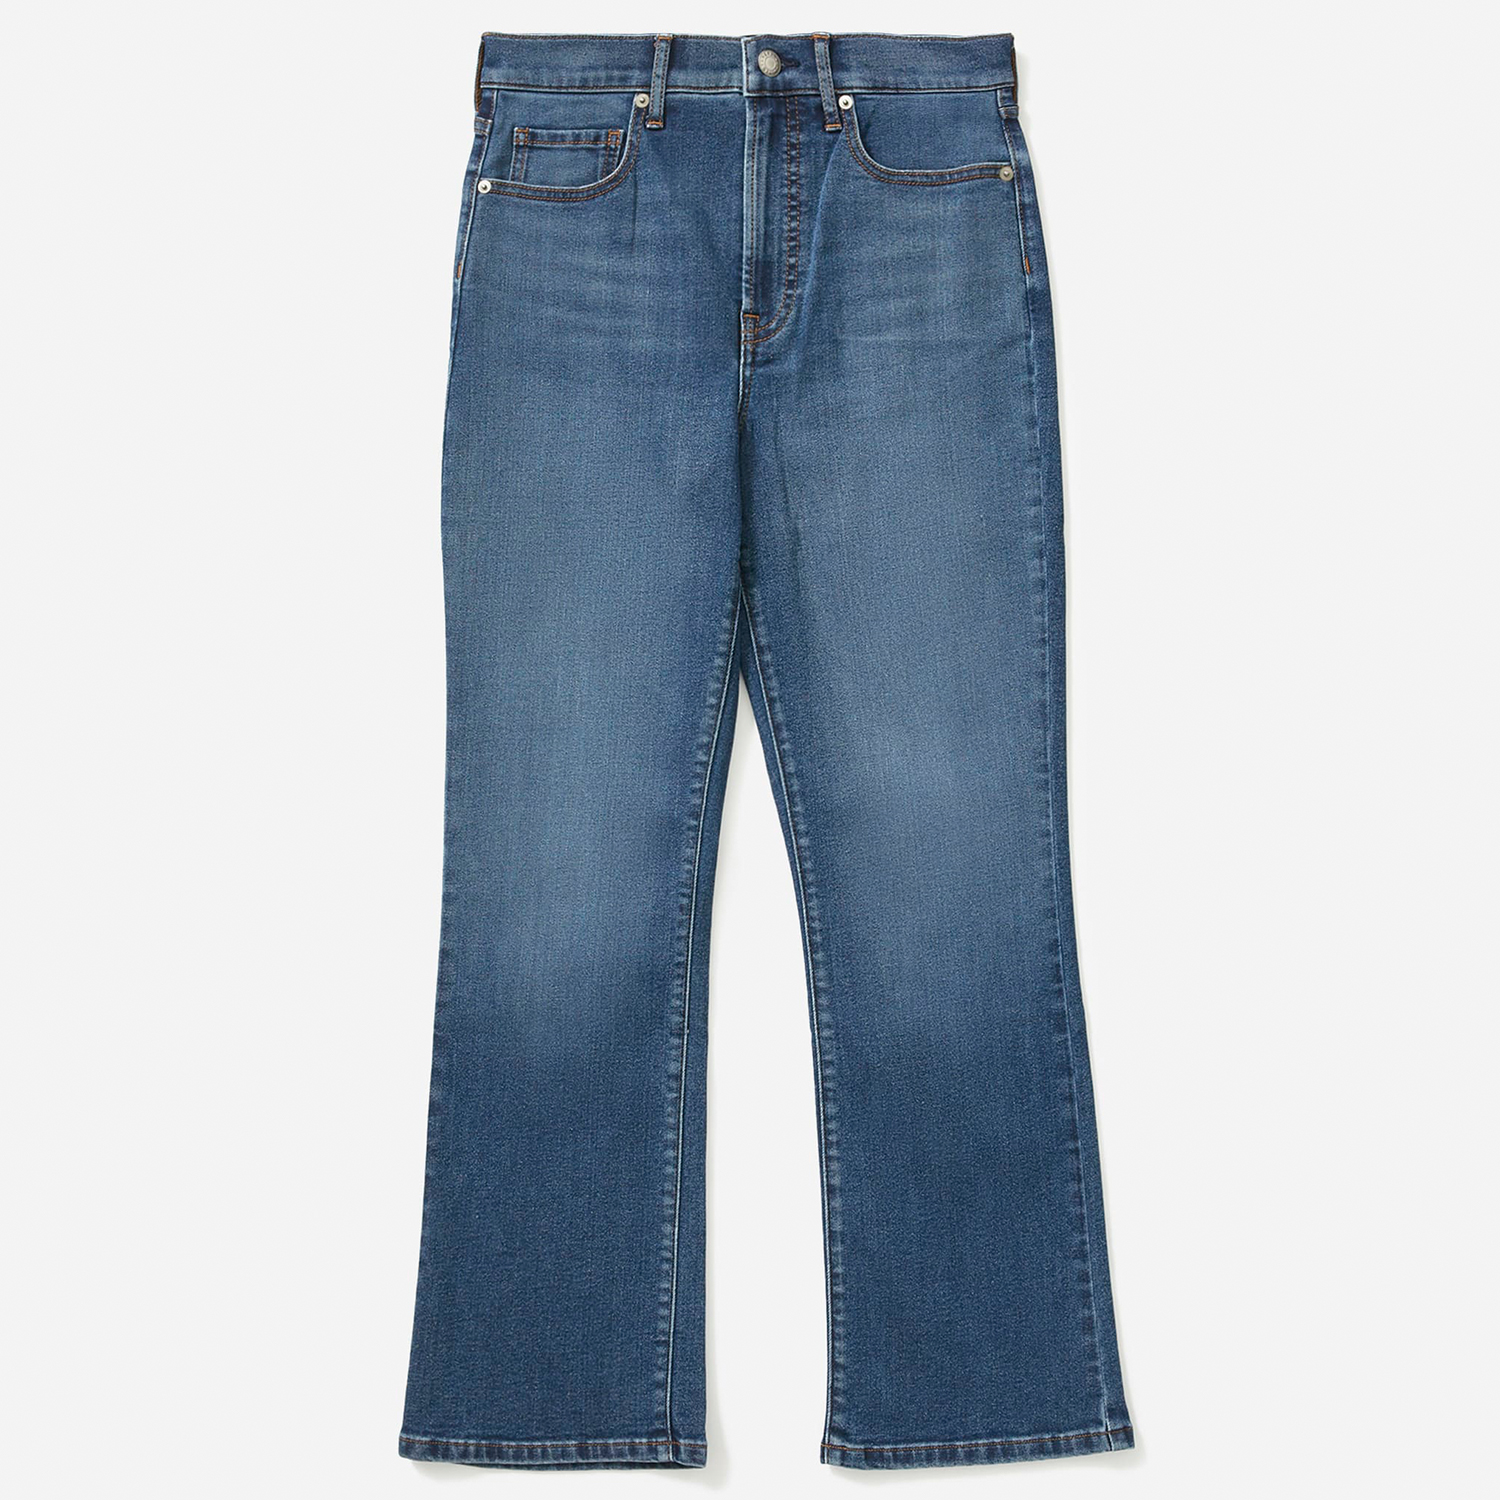 The Authentic Stretch Skinny Bootcut